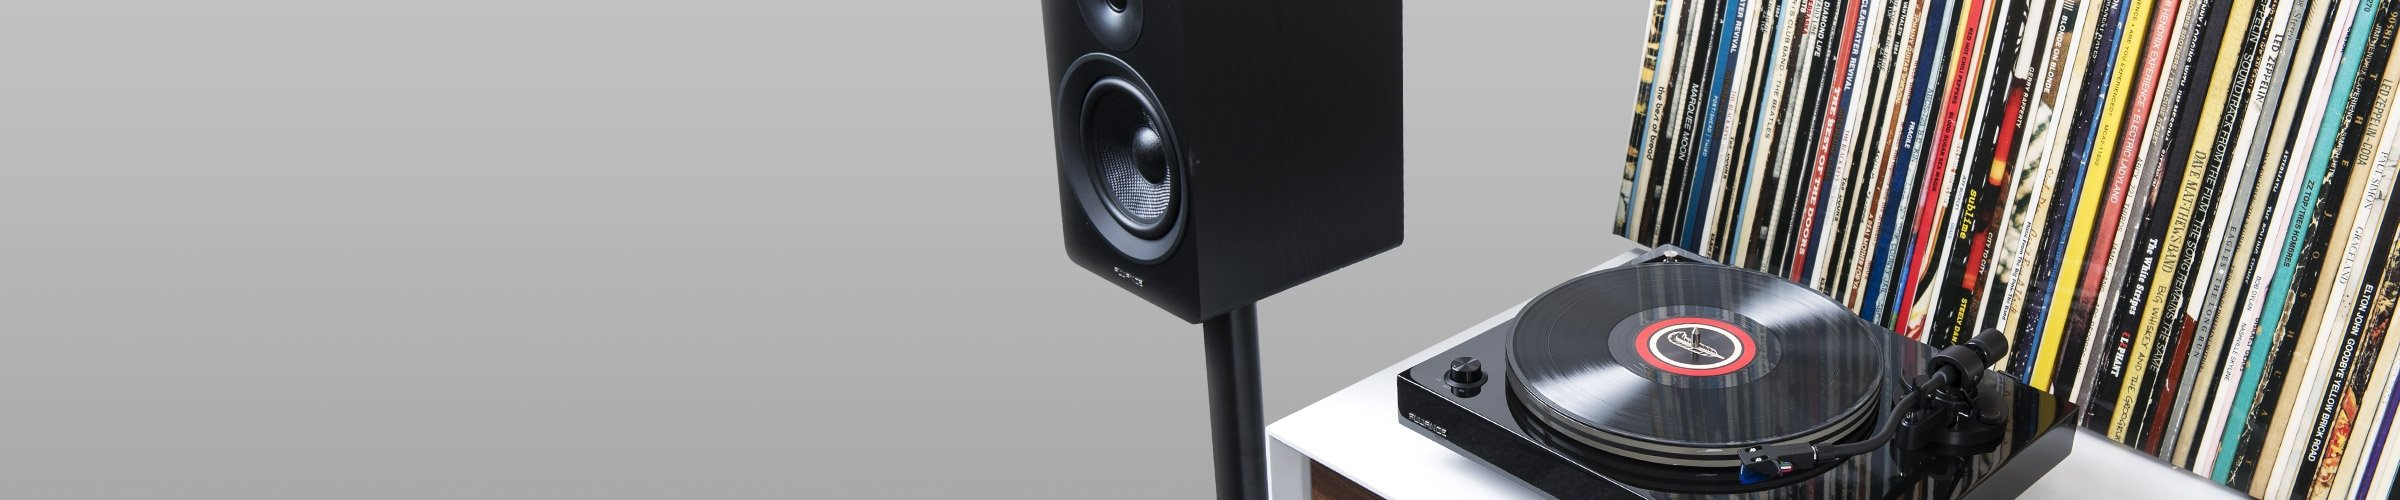 Turntable Speaker Systems